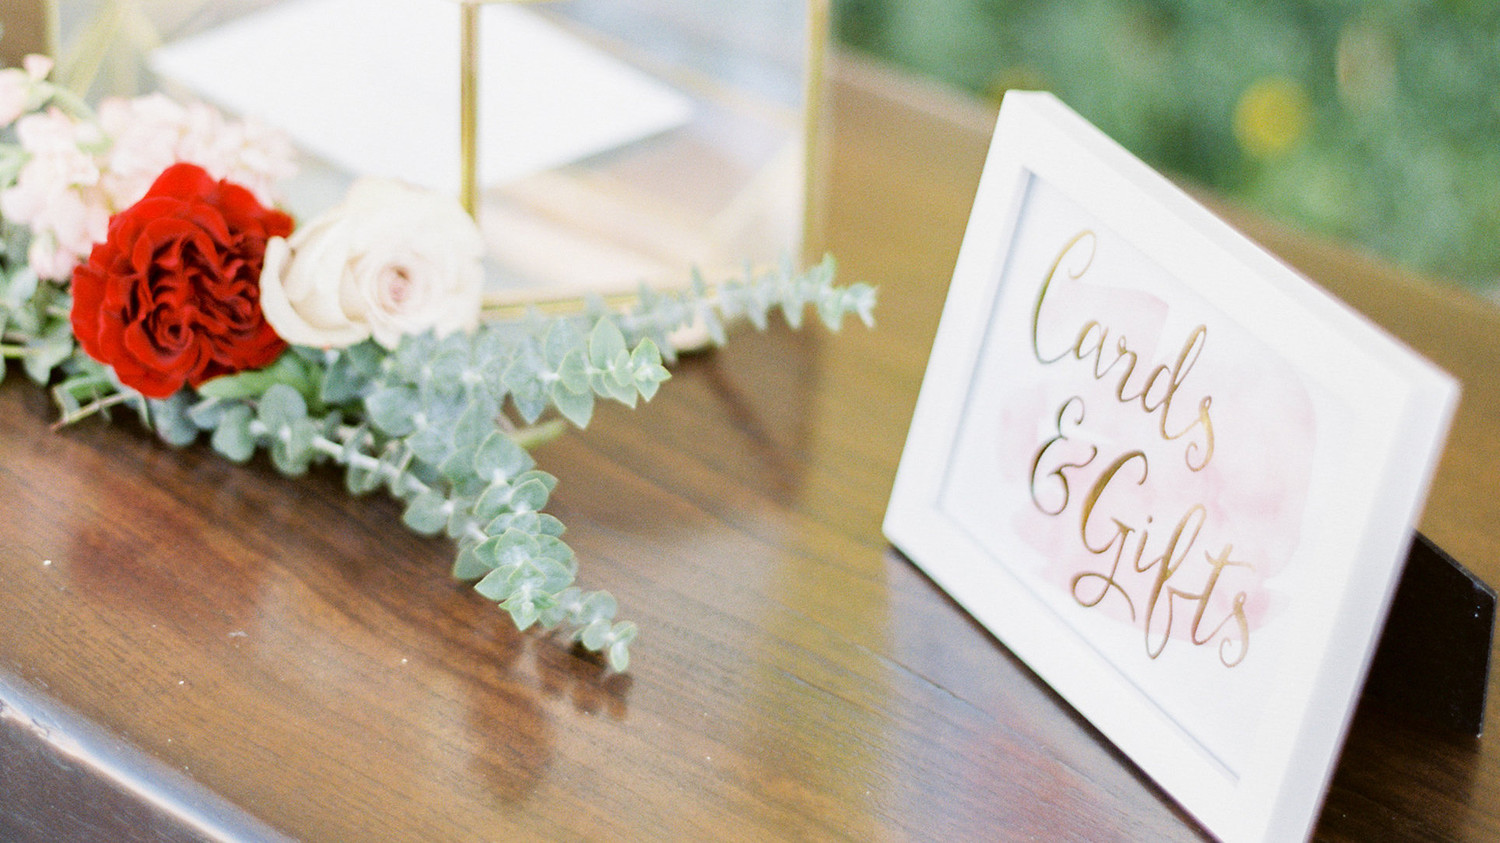 Martha Stewart Wedding Gift Ideas: 21 Ways To Set Up A Card Or Gift Table At Your Wedding